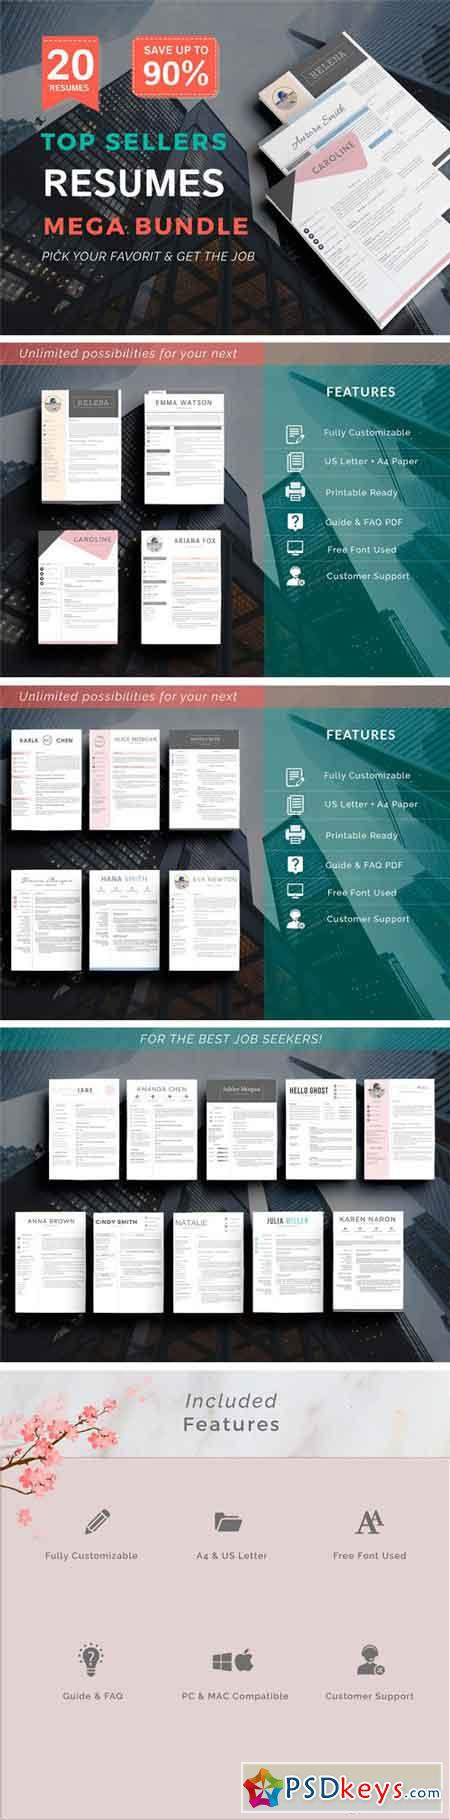 Top Selling Resume - Super Bundle 1643431